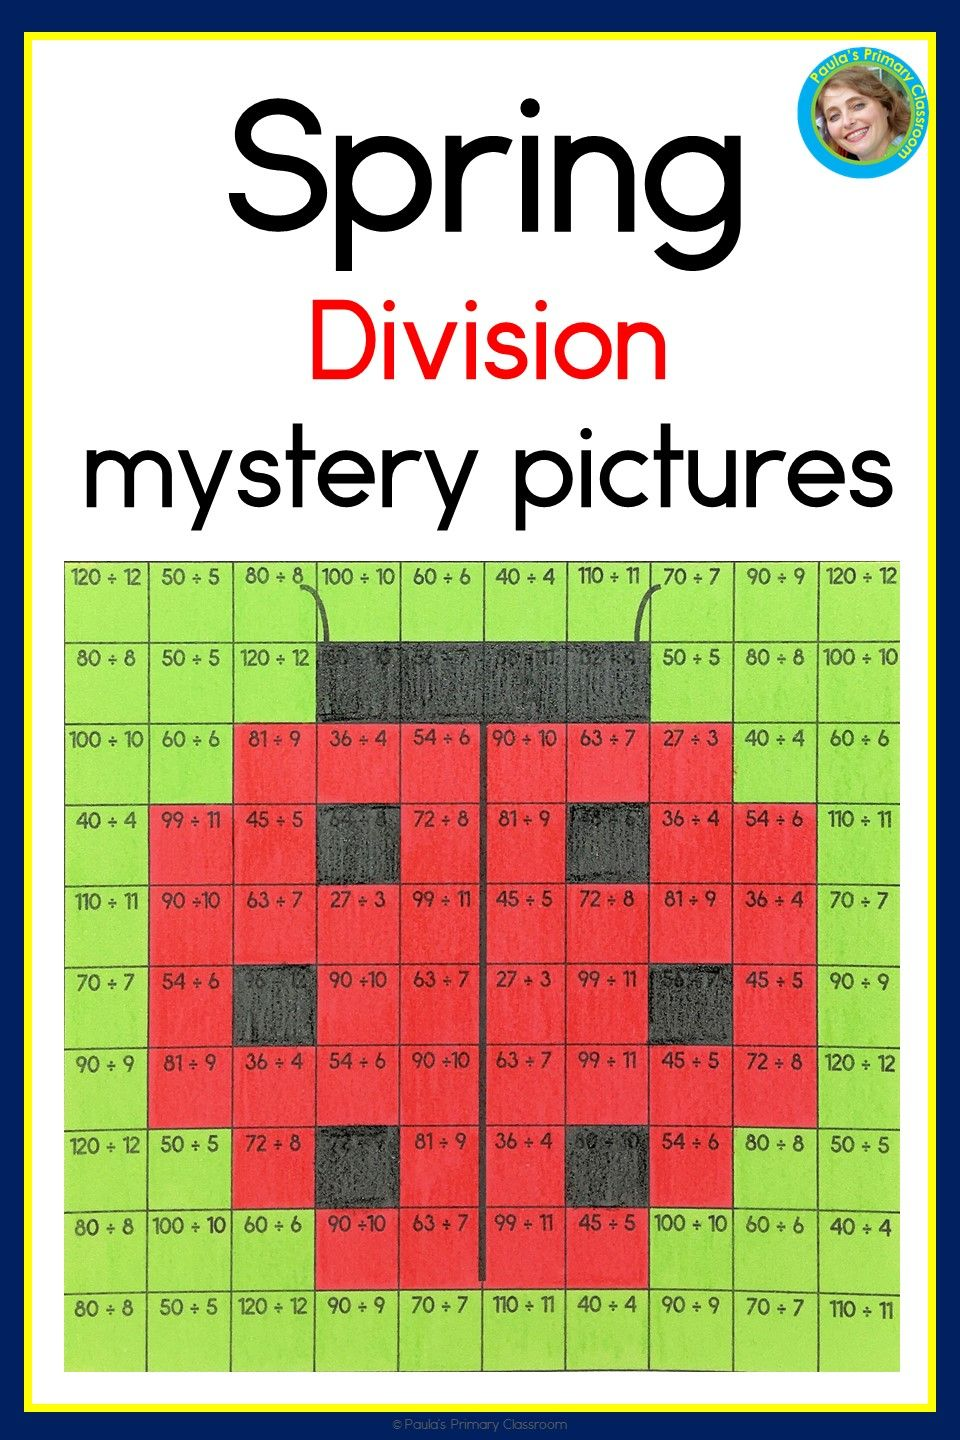 Division Facts Practice Spring Theme Mystery Picture Worksheets For 3rd And 4th Grade No Prep Division Facts Practice Mystery Pictures Math Fact Practice [ 1440 x 960 Pixel ]